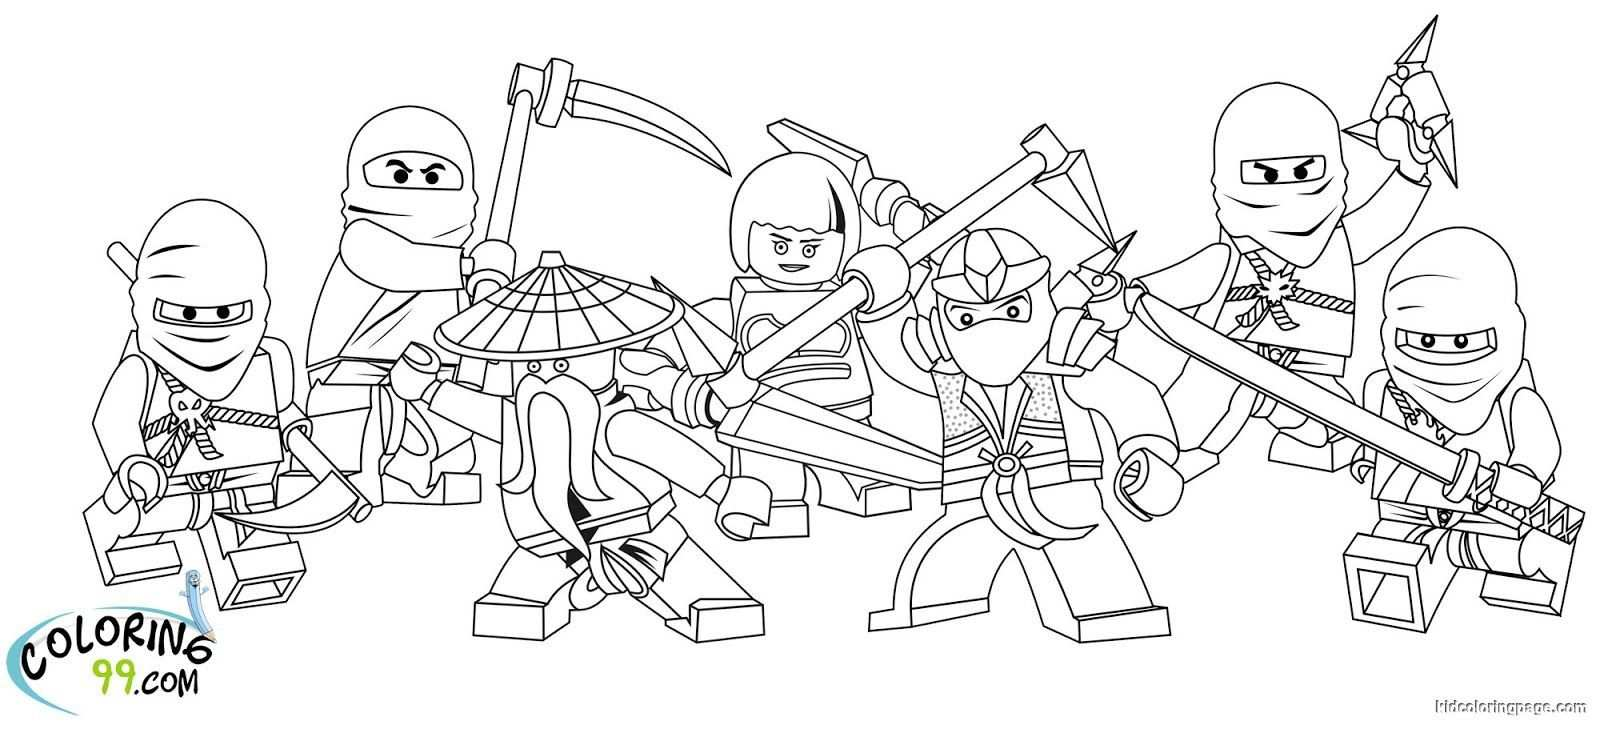 Lego Ninjago Team Coloring Pages With Images Darmowe